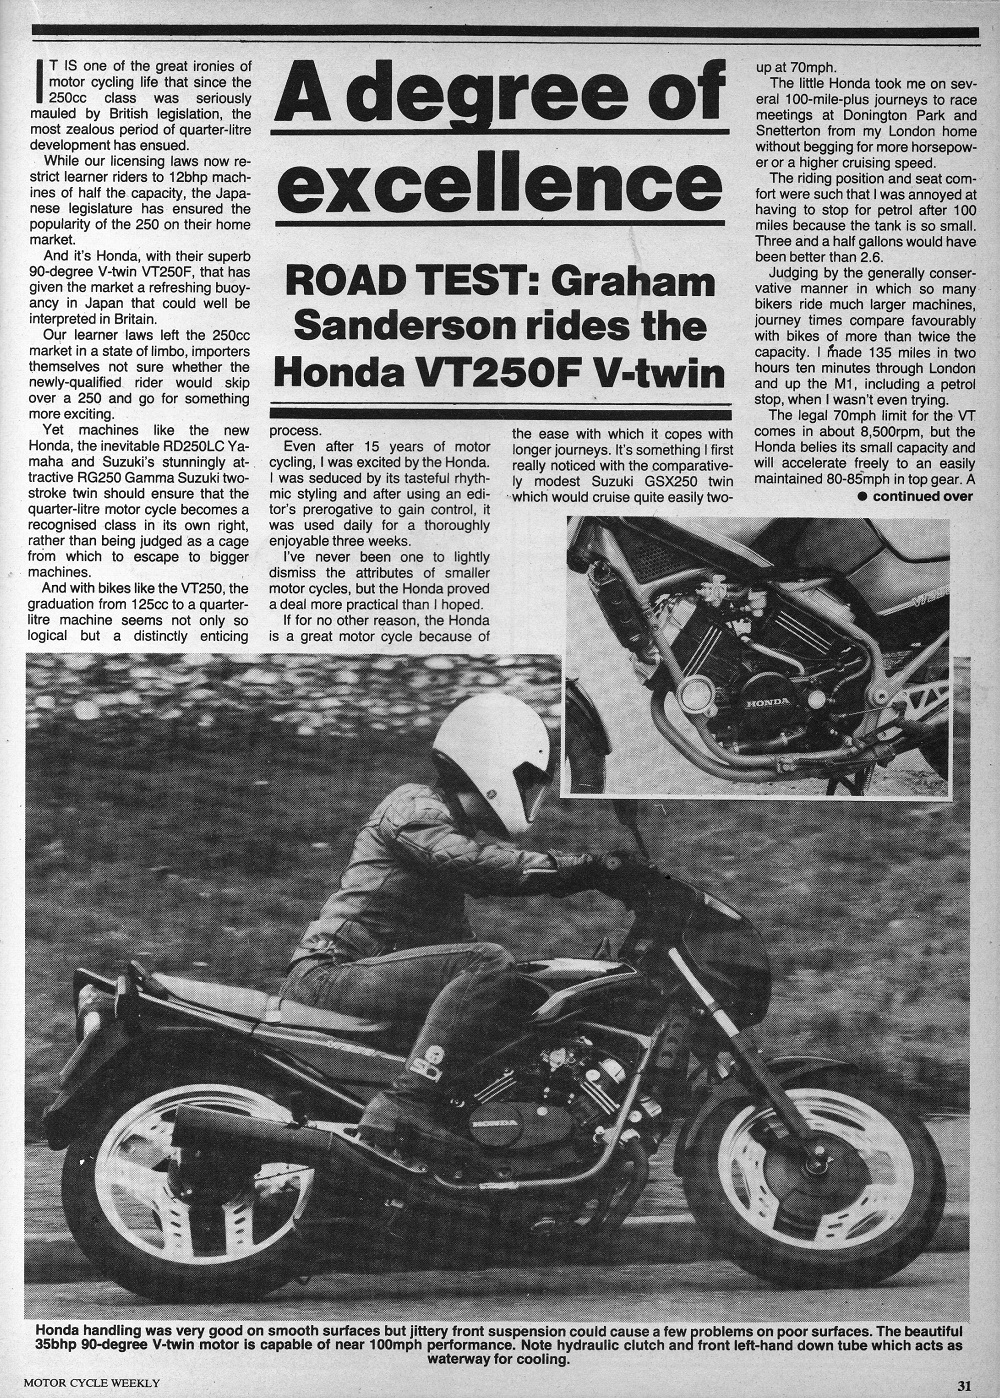 1983 Honda VT250F road test.1.jpg